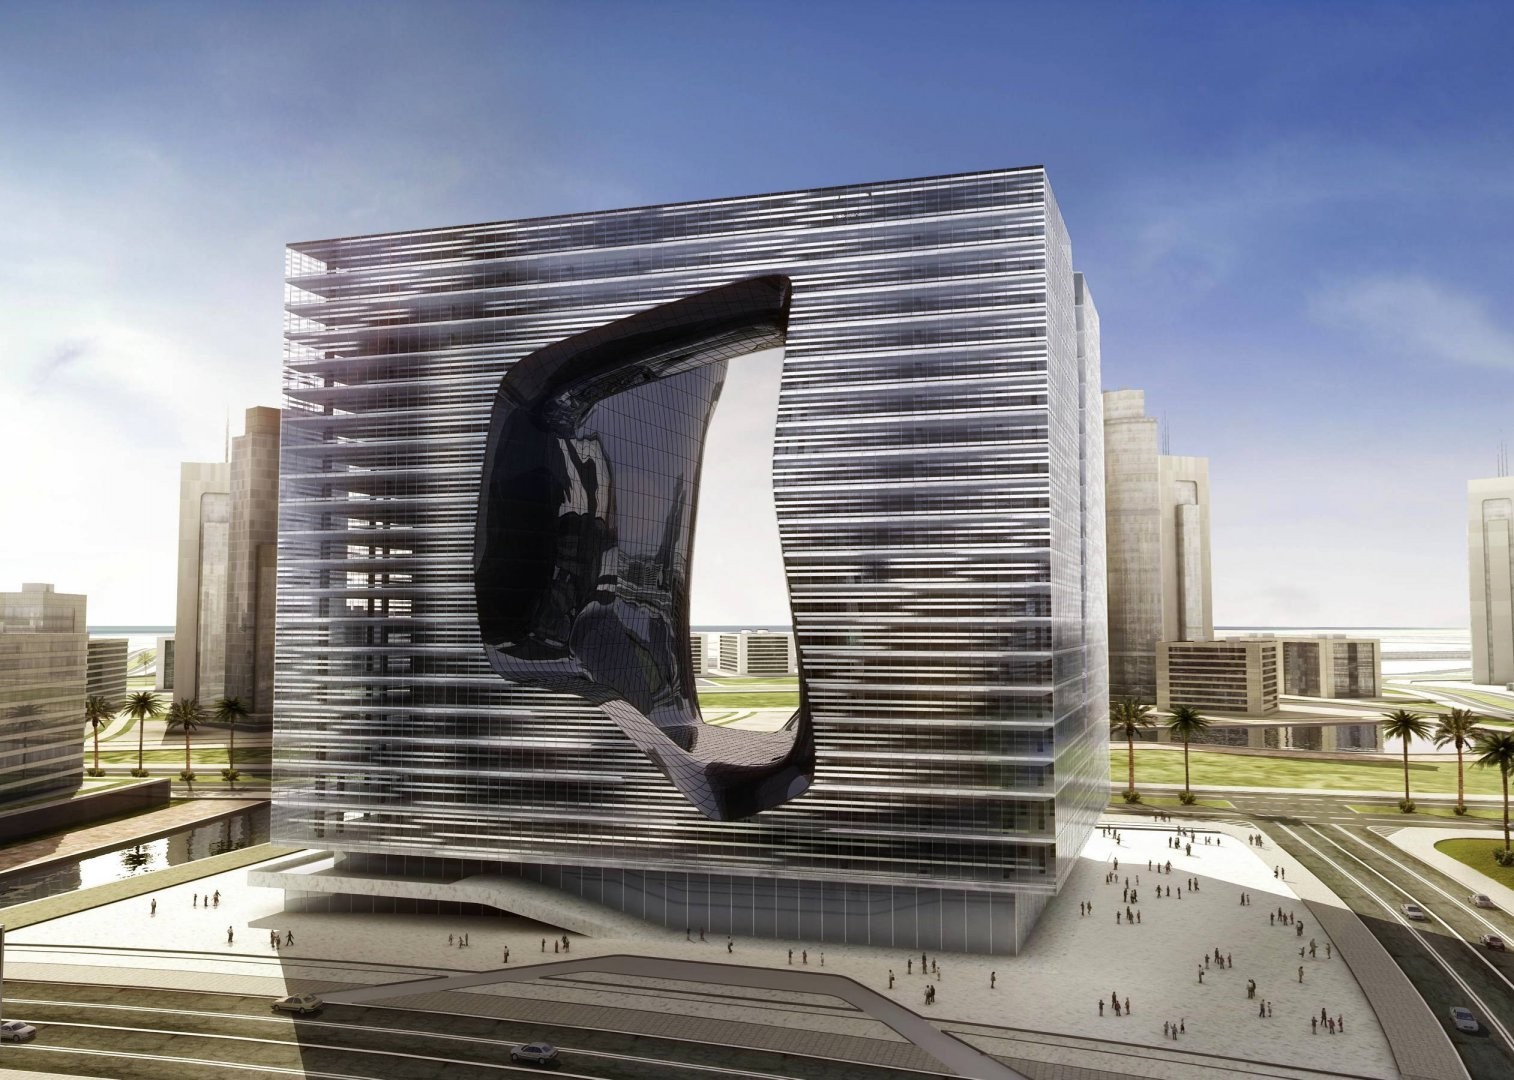 Zaha Hadid Designs New Office Building and Hotel for Dubai, Courtesy of Zaha Hadid Architects